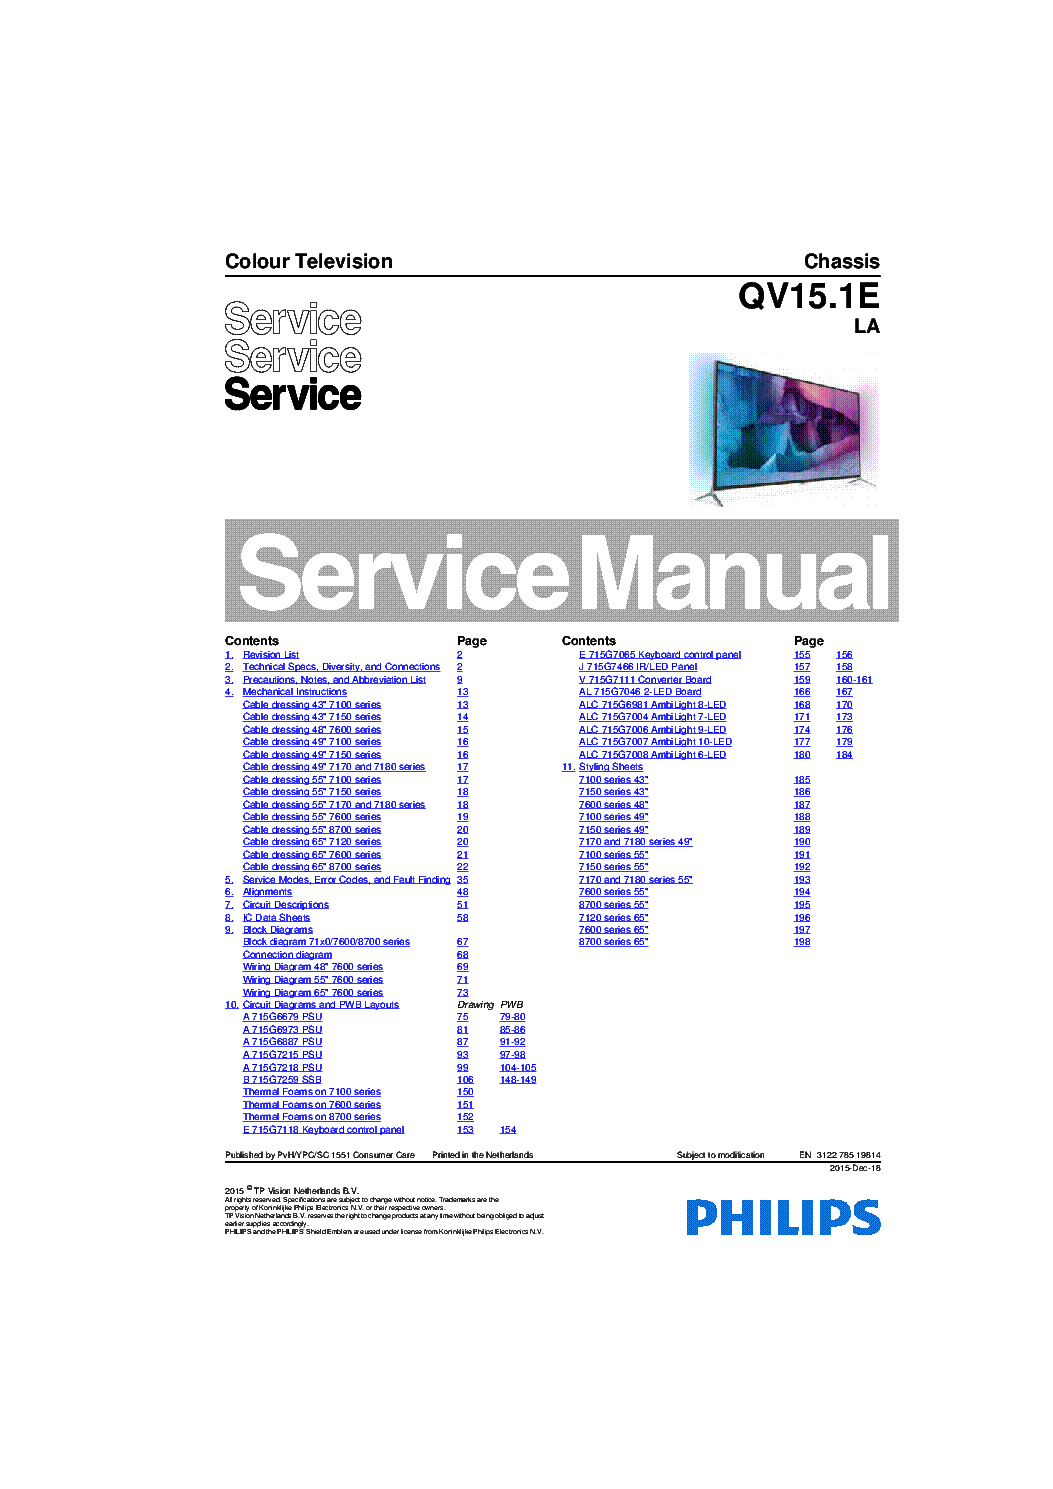 PHILIPS QV15.1ELA 312278519814 CHASSIS service manual (1st page)